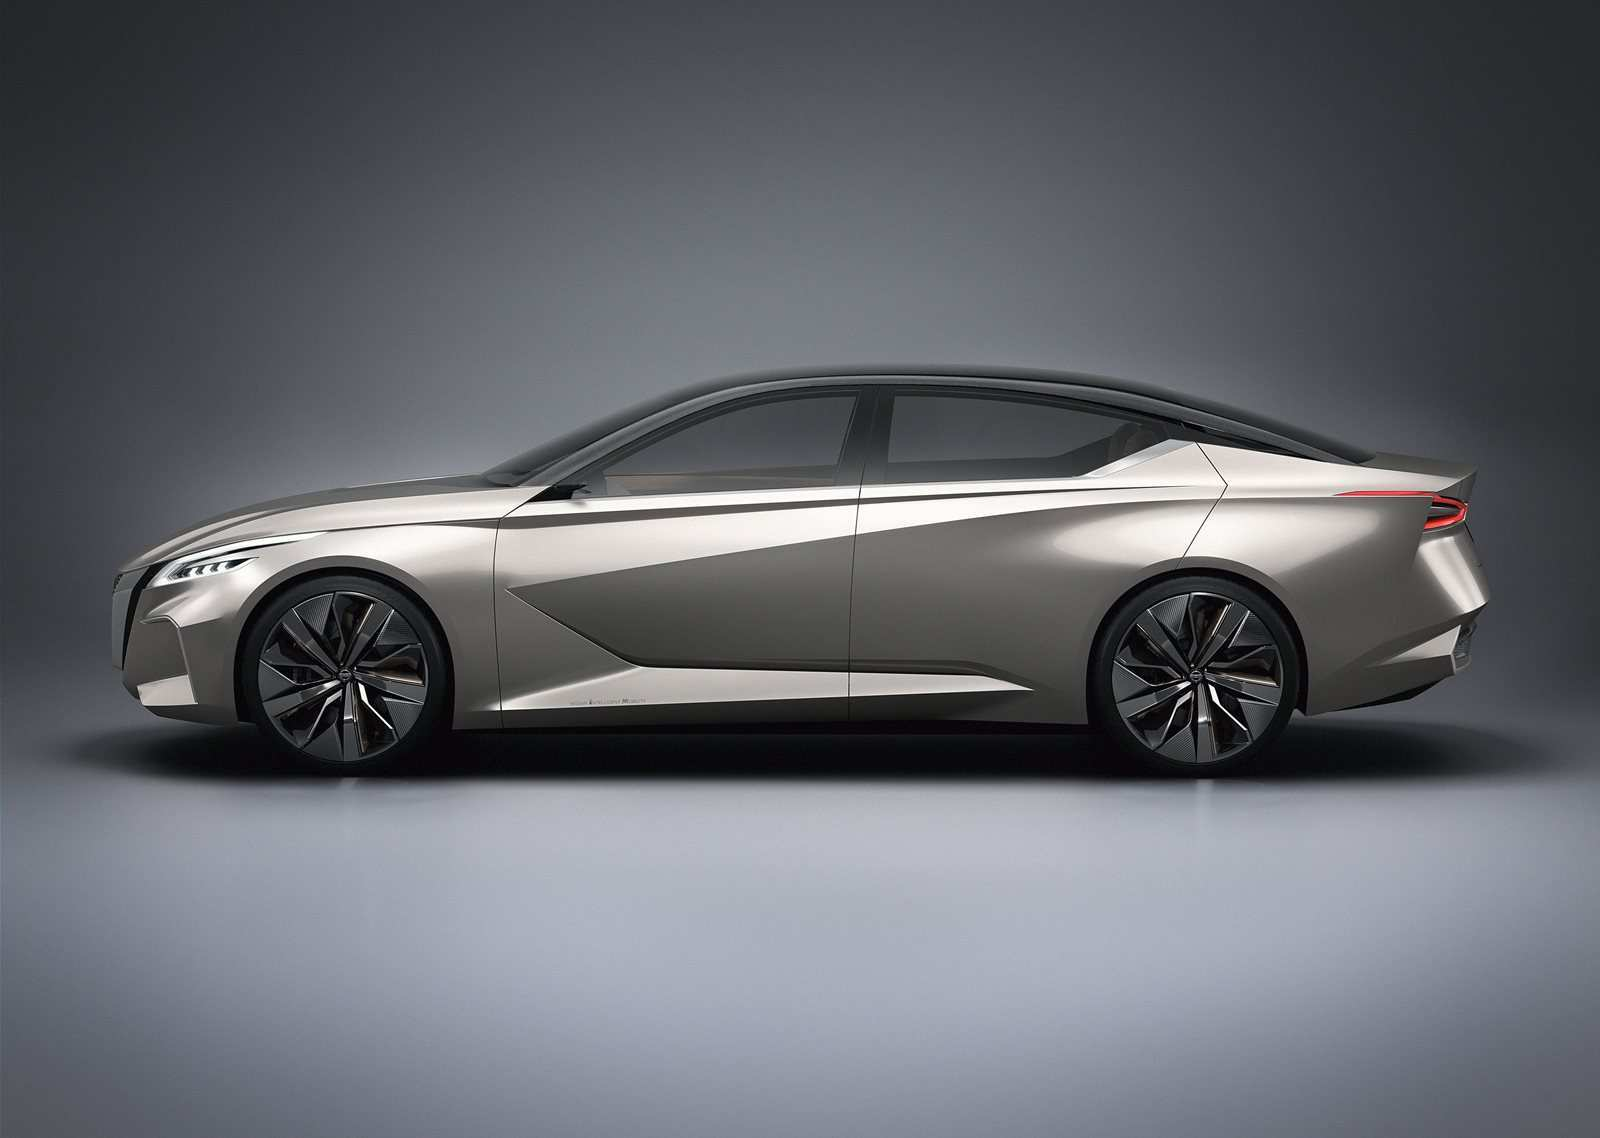 73 Great 2019 Nissan Altima Concept Performance and New Engine by 2019 Nissan Altima Concept